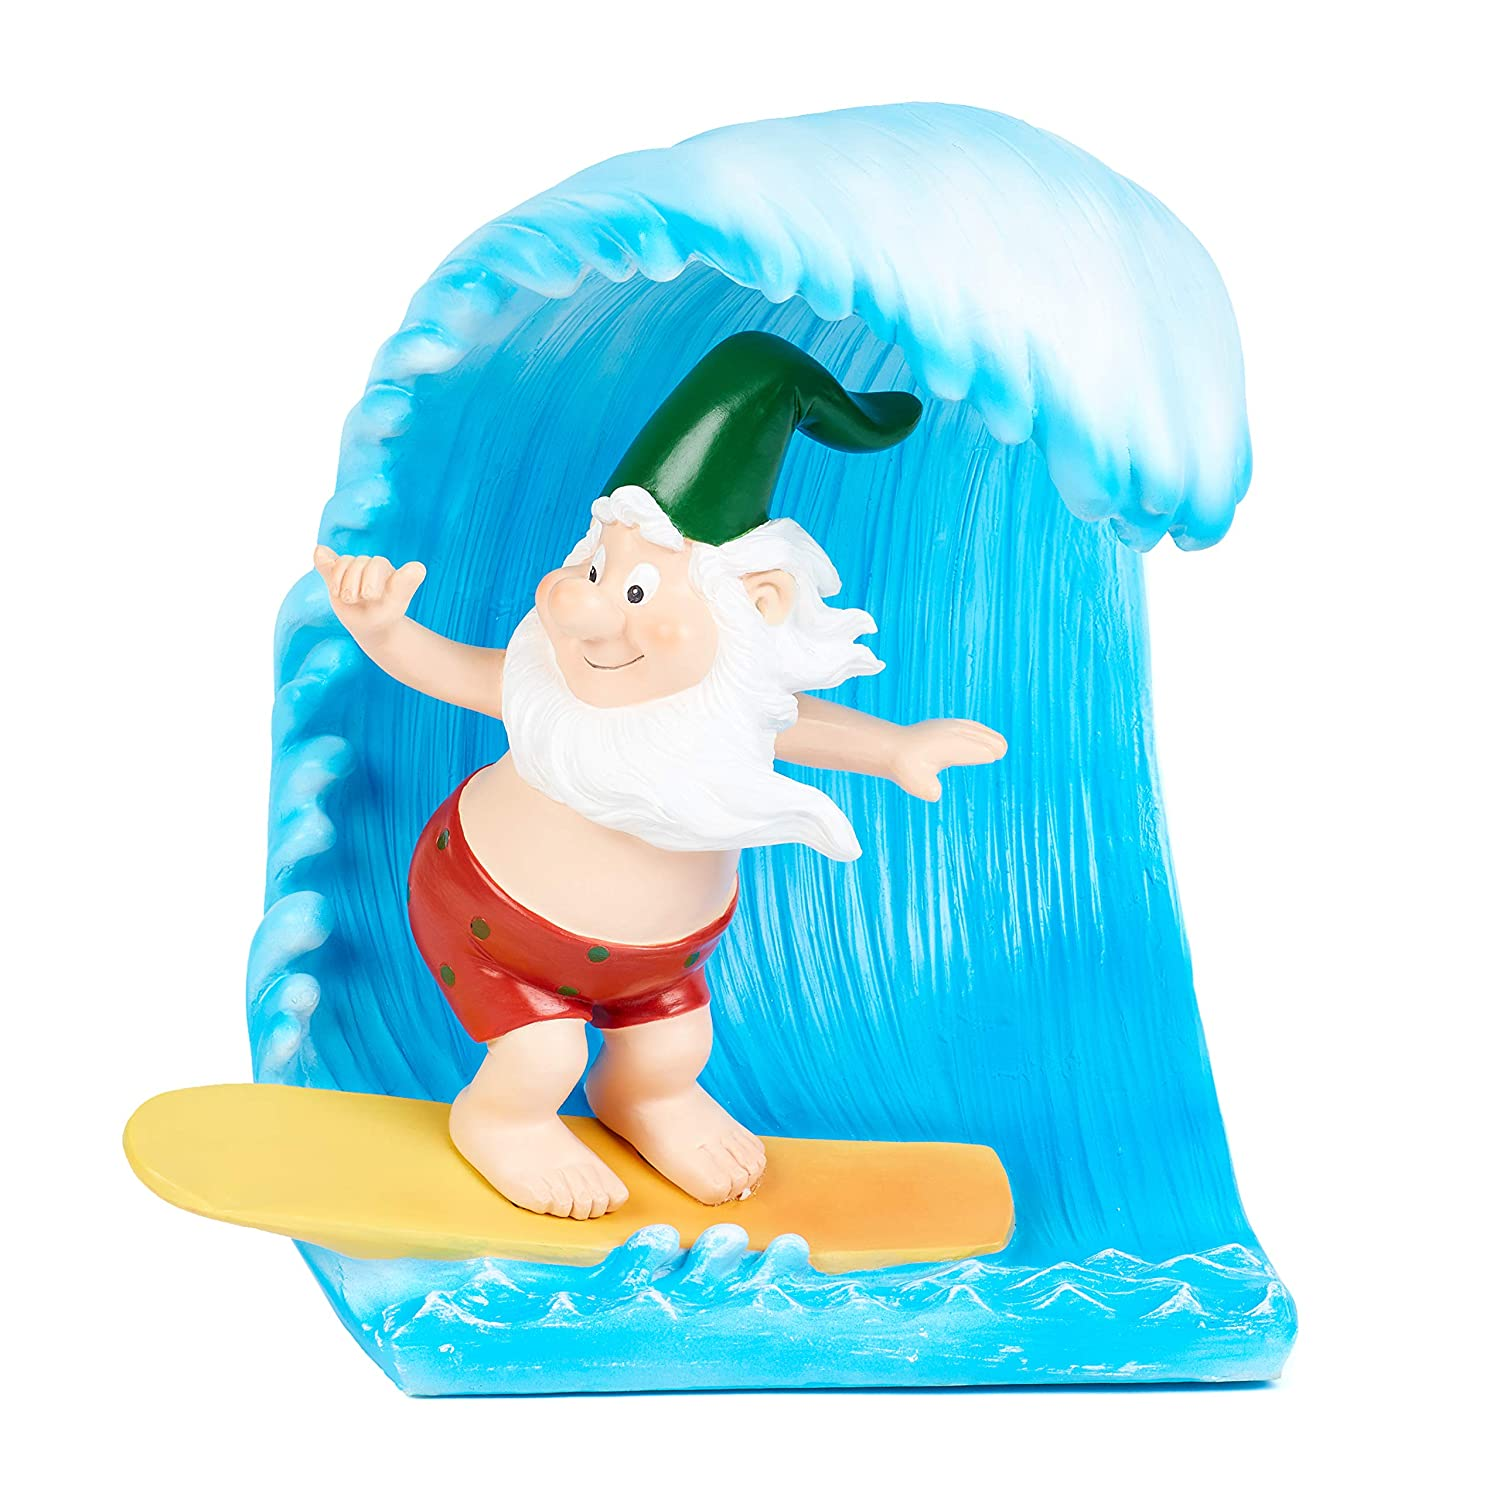 "Dawn & Claire Gneptune The Gnarly Gnome A Garden Gnome Who Loves to Hang Ten! (Mini - 6.3"")"